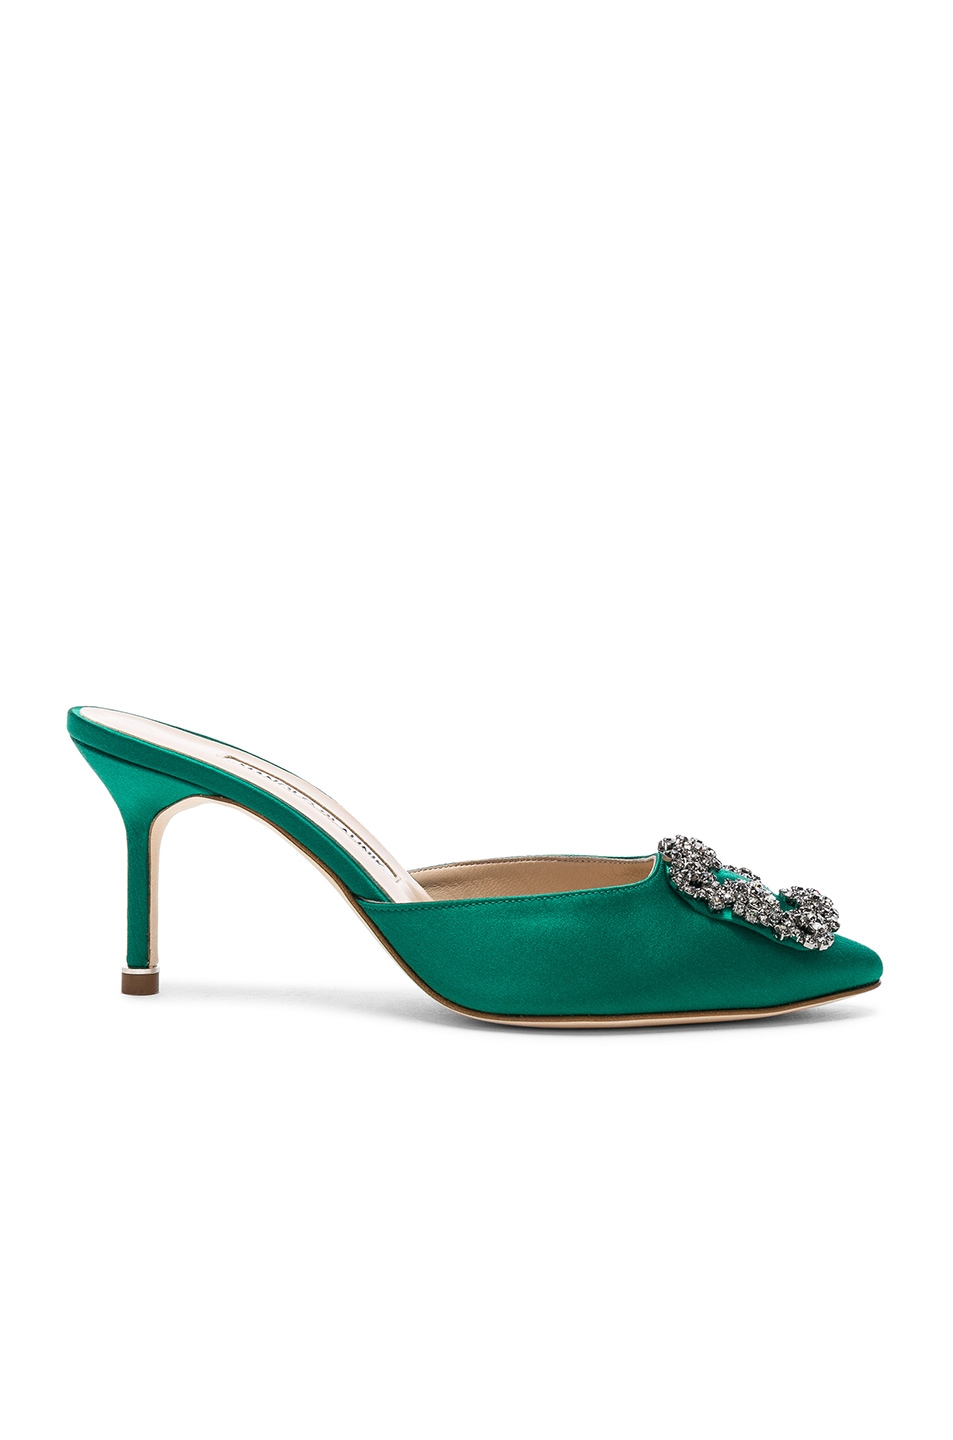 79aa9d27867a Image 1 of Manolo Blahnik Satin Hangisi 70 Mules in Green Satin